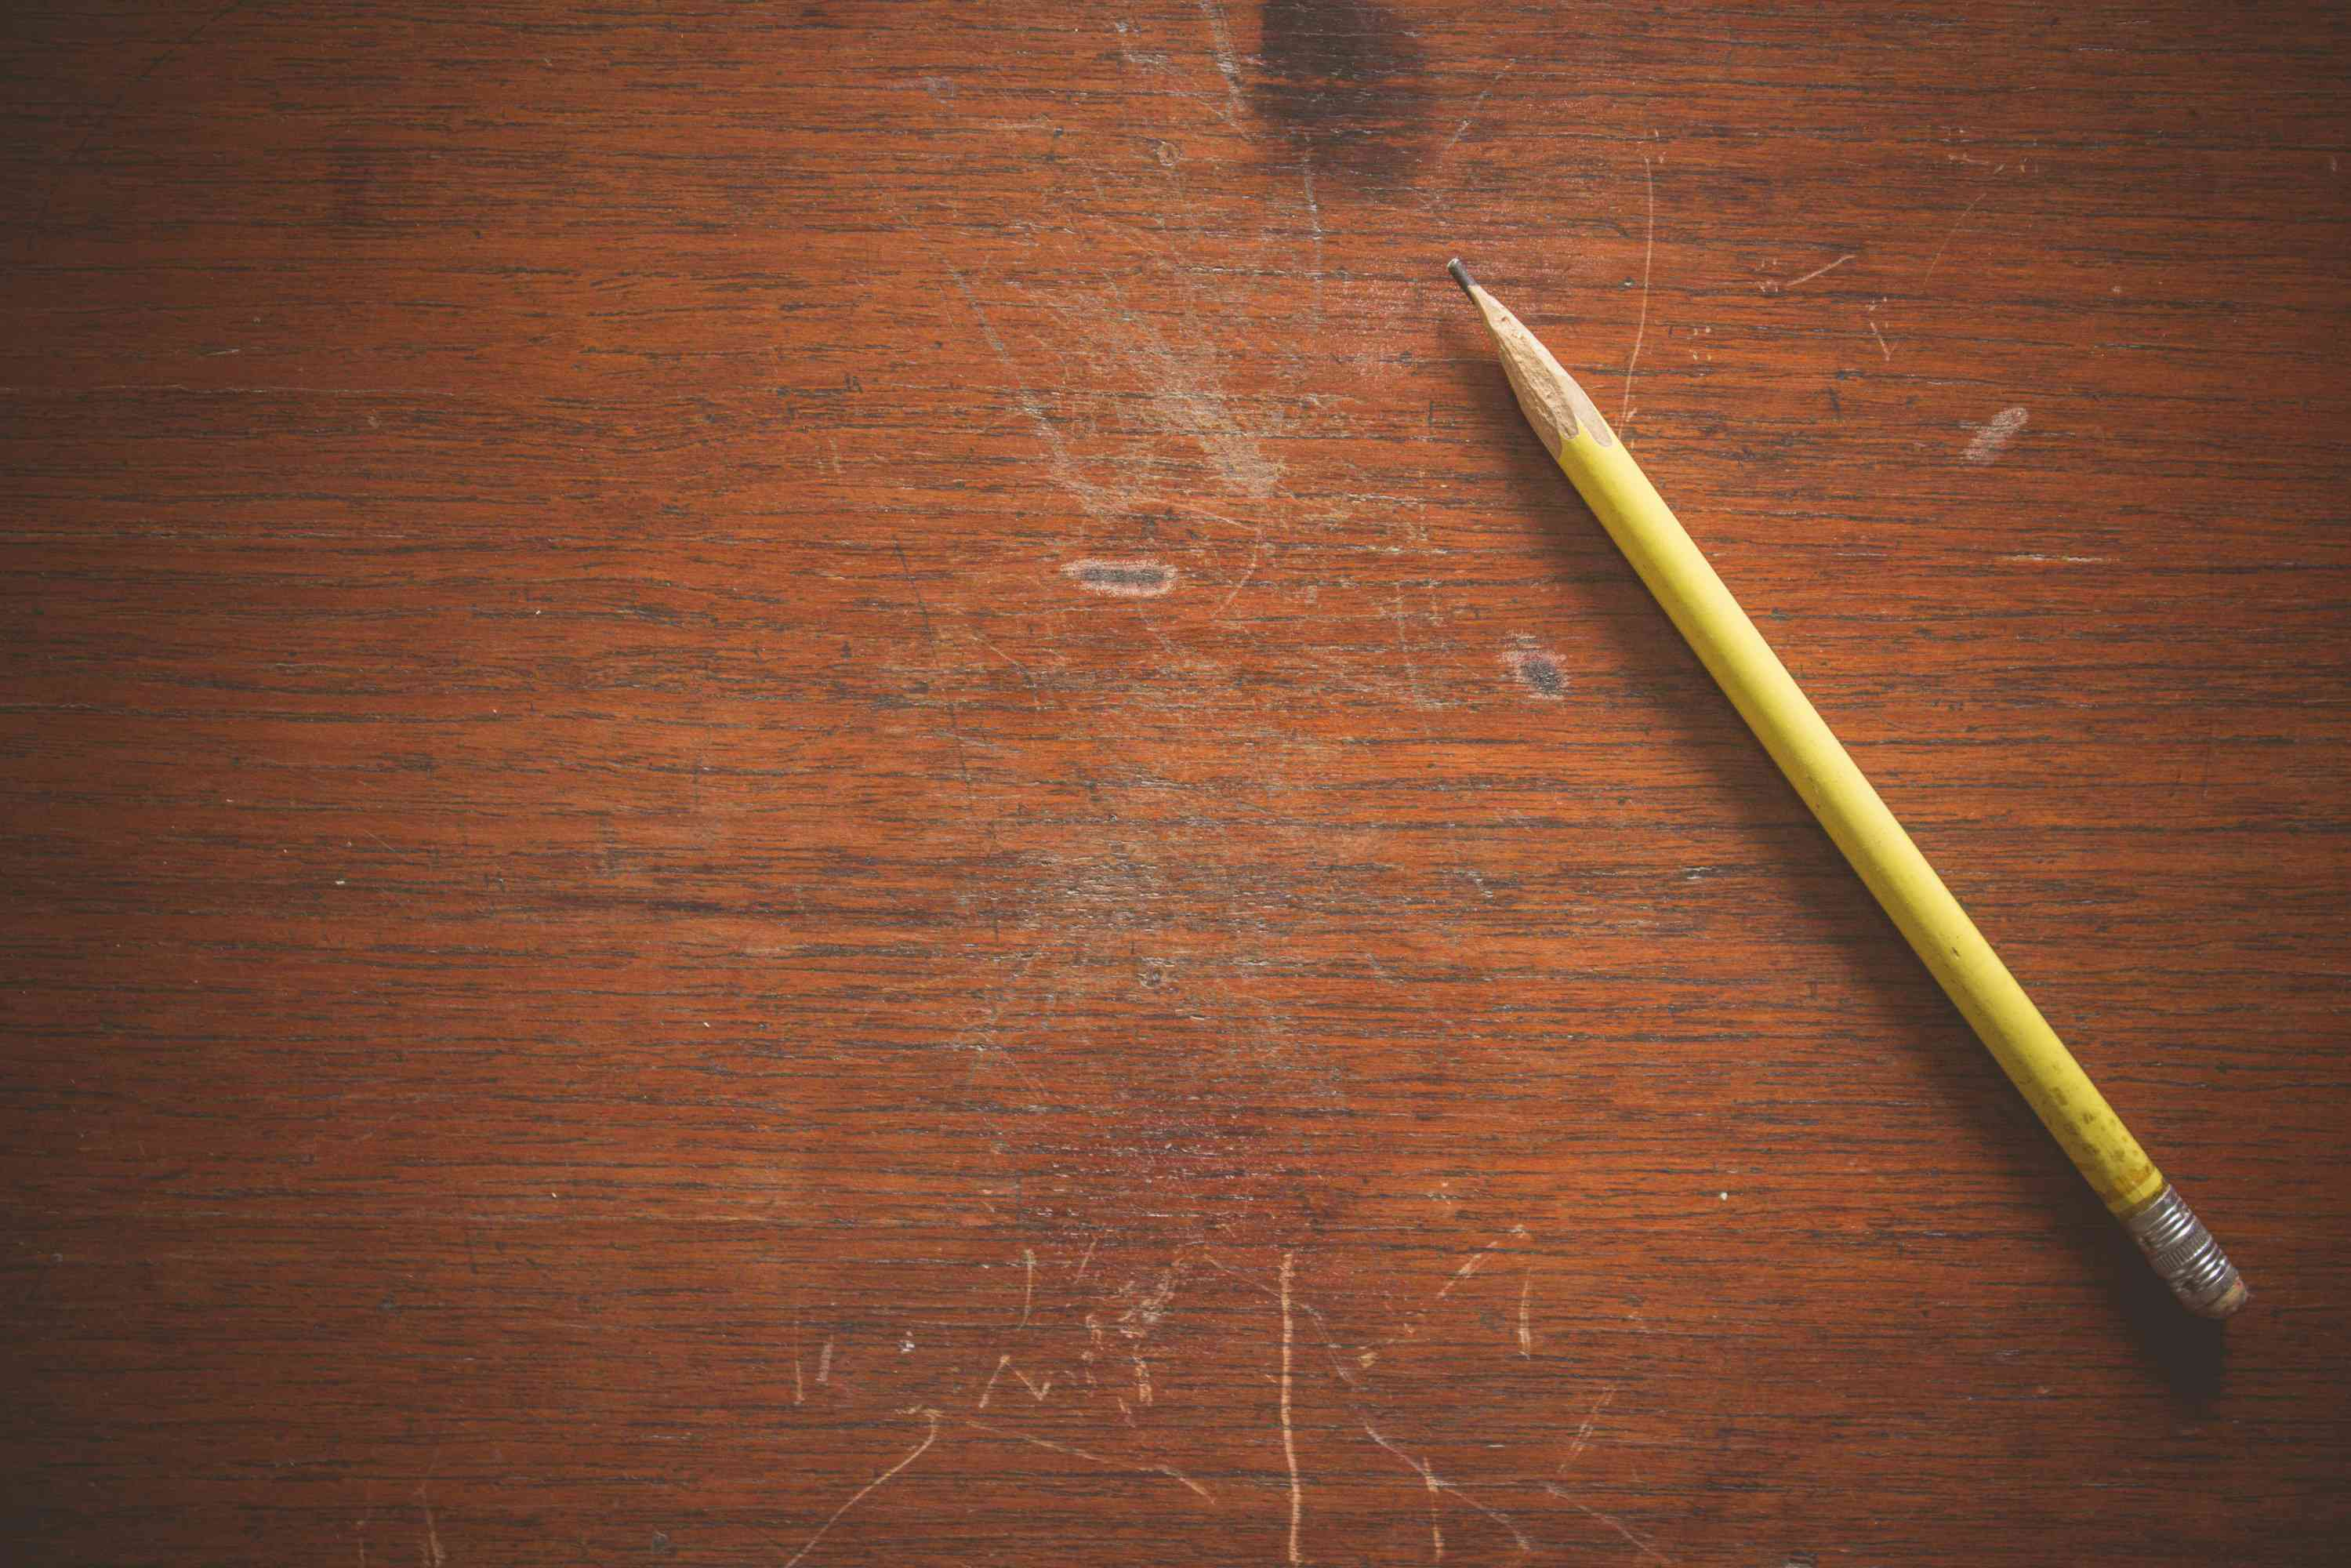 Yellow pencil on scratched wood desk